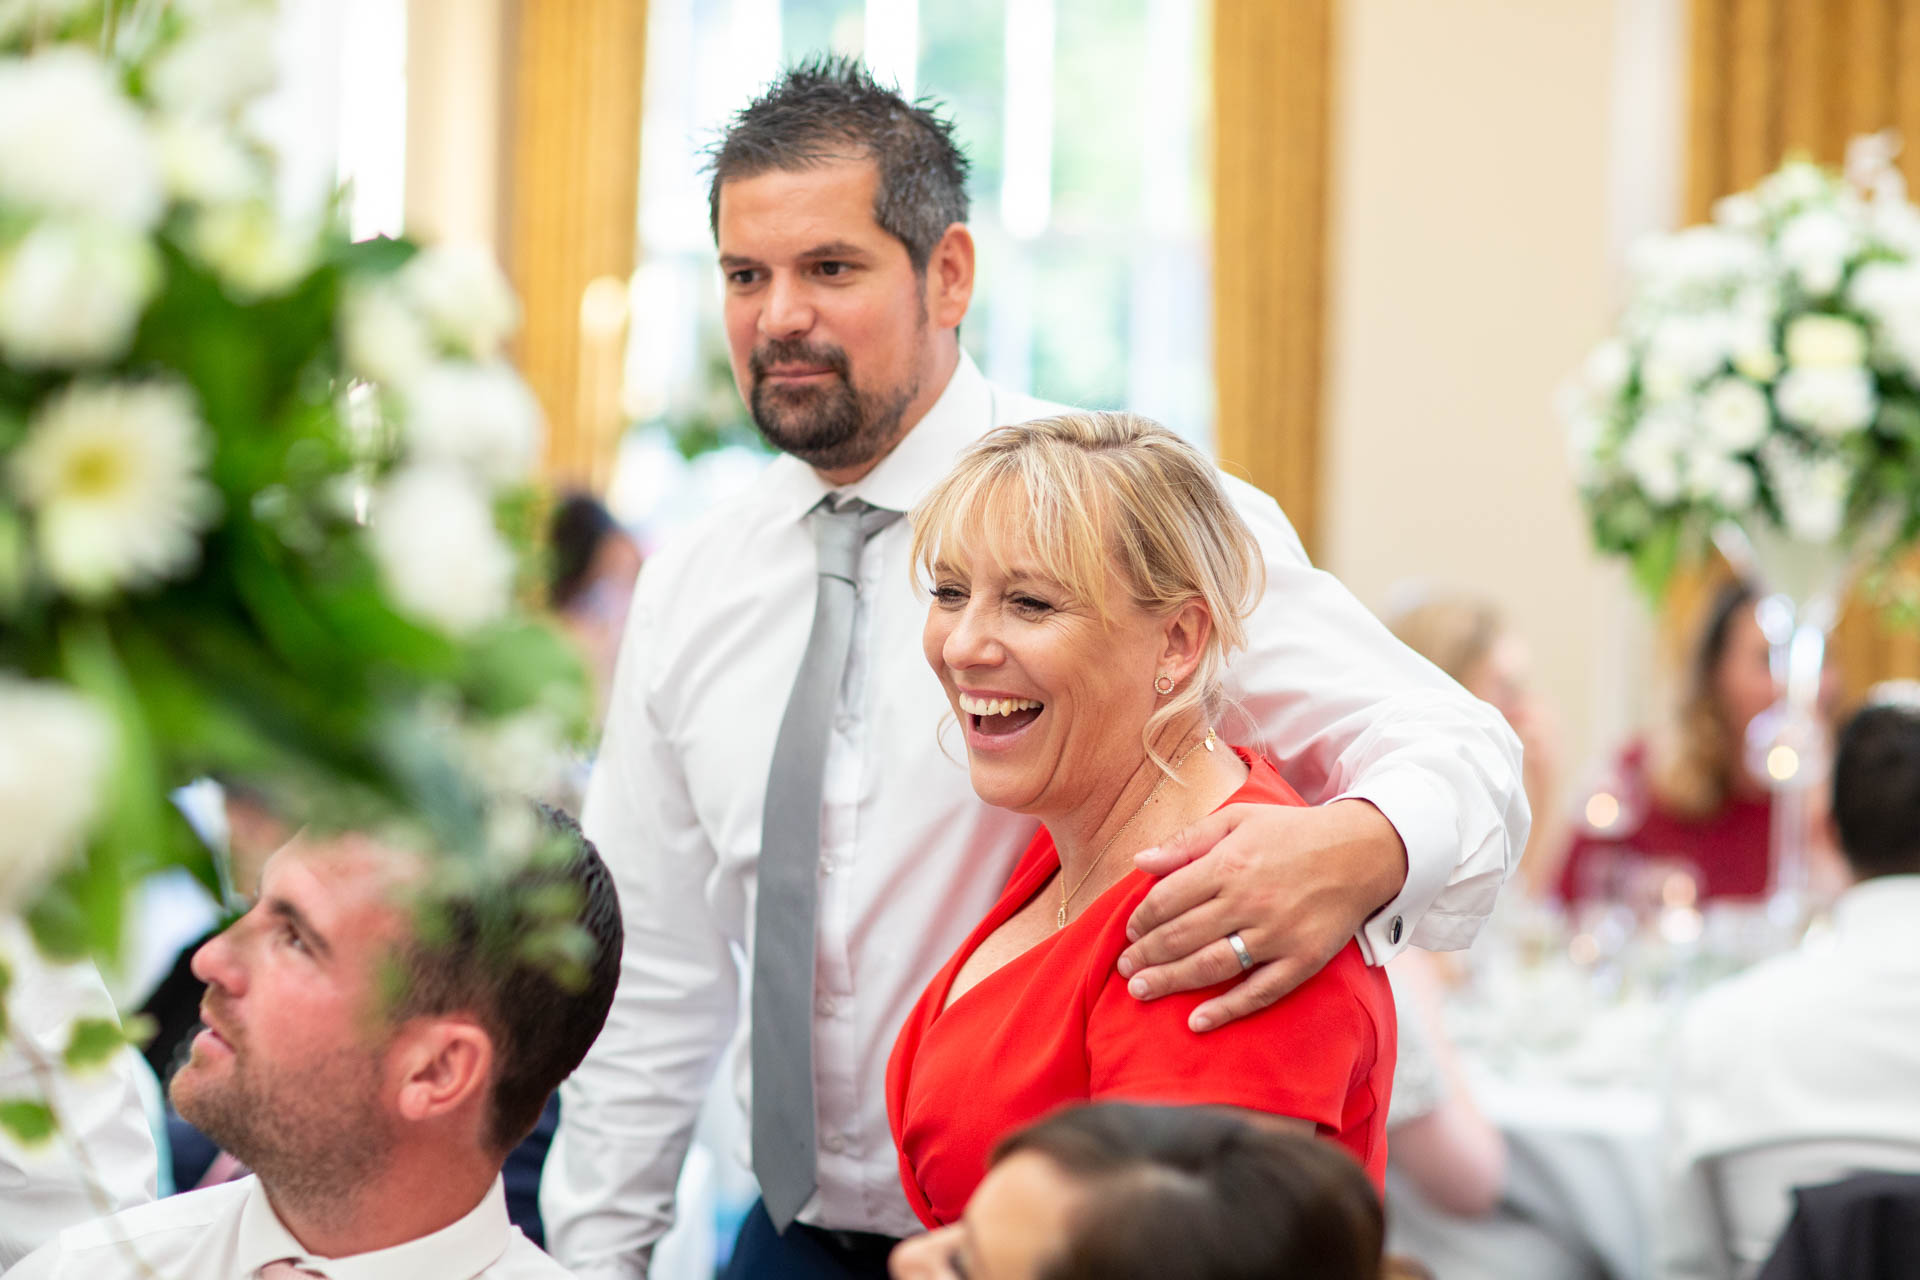 Wedding reception reportage photograph at The Lawn orangery Rochford Essex